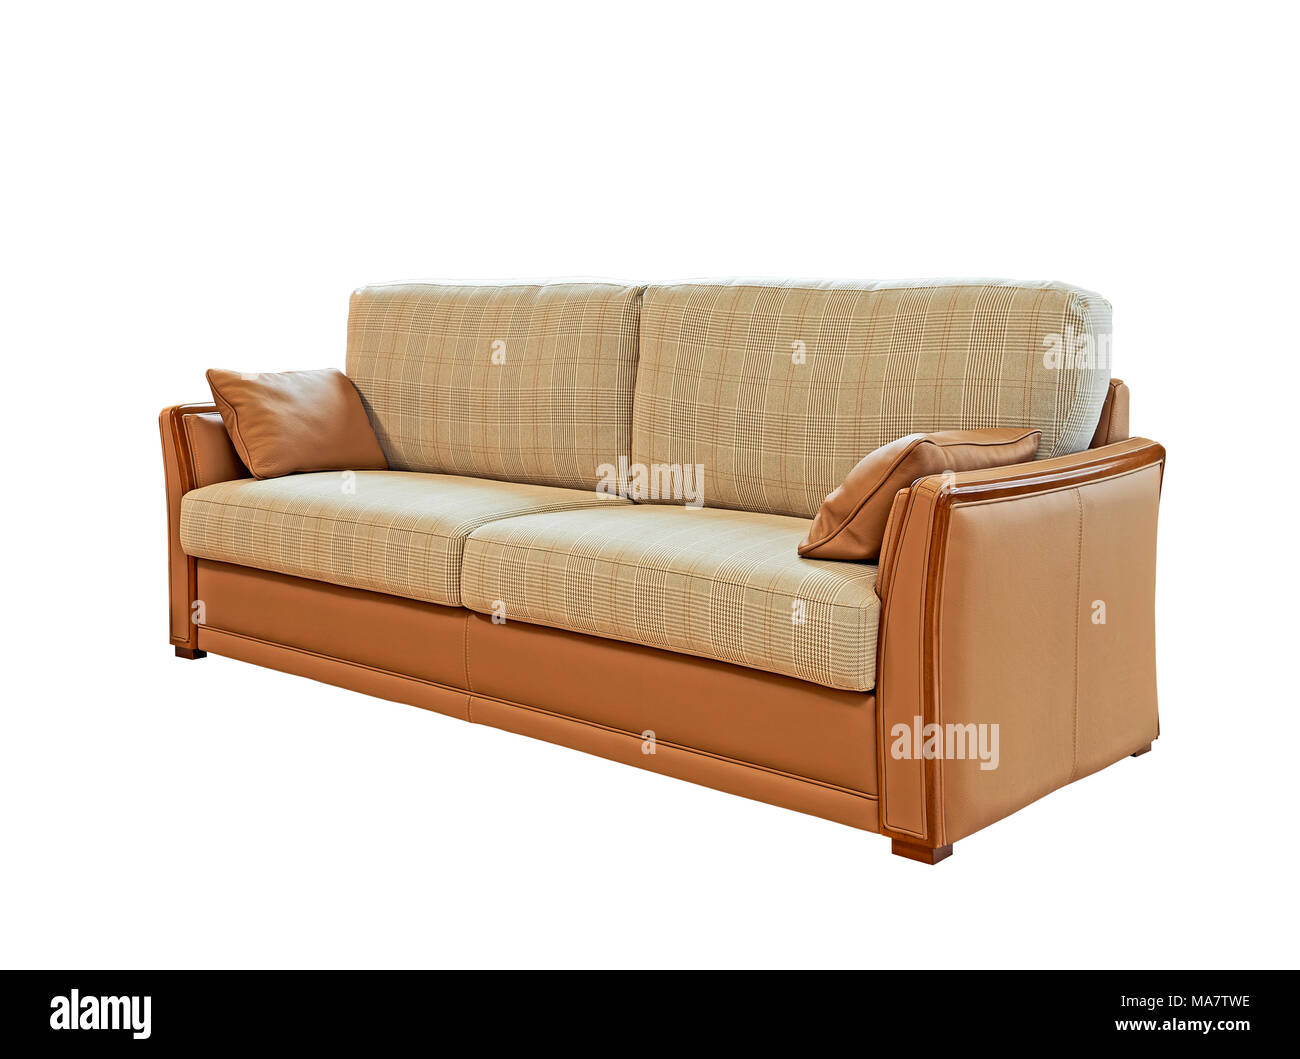 Classical Leather, Wood And Fabric Sofa Isolated On White With Clipping Path